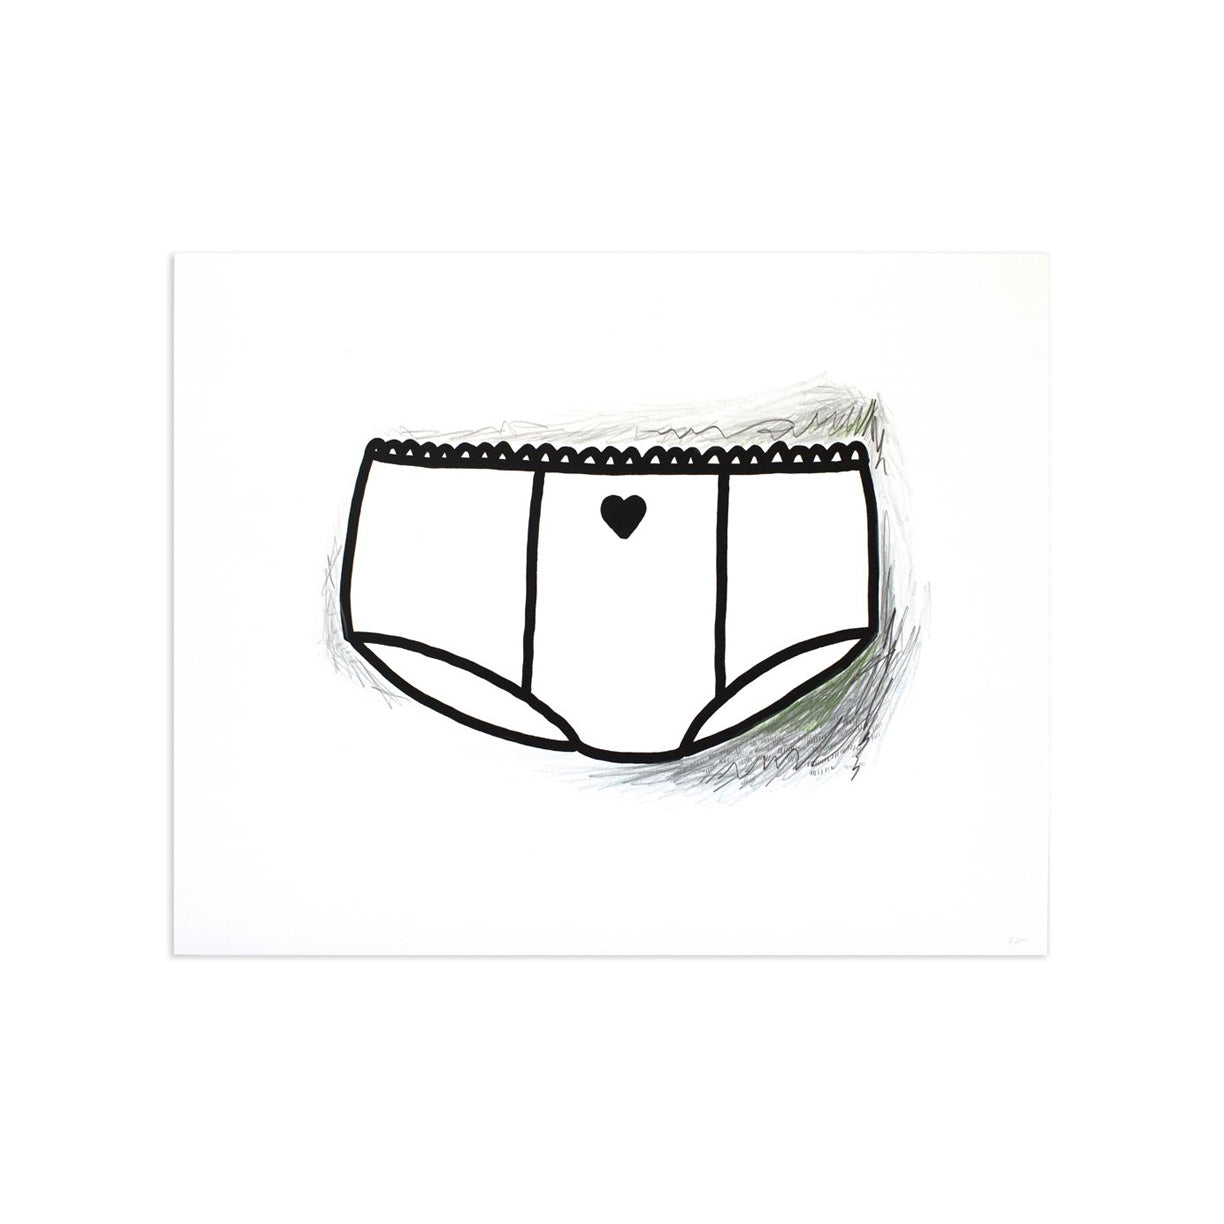 Briefs (Ladies) AE/2 by Bea | Artist Edition | Poster Child Prints